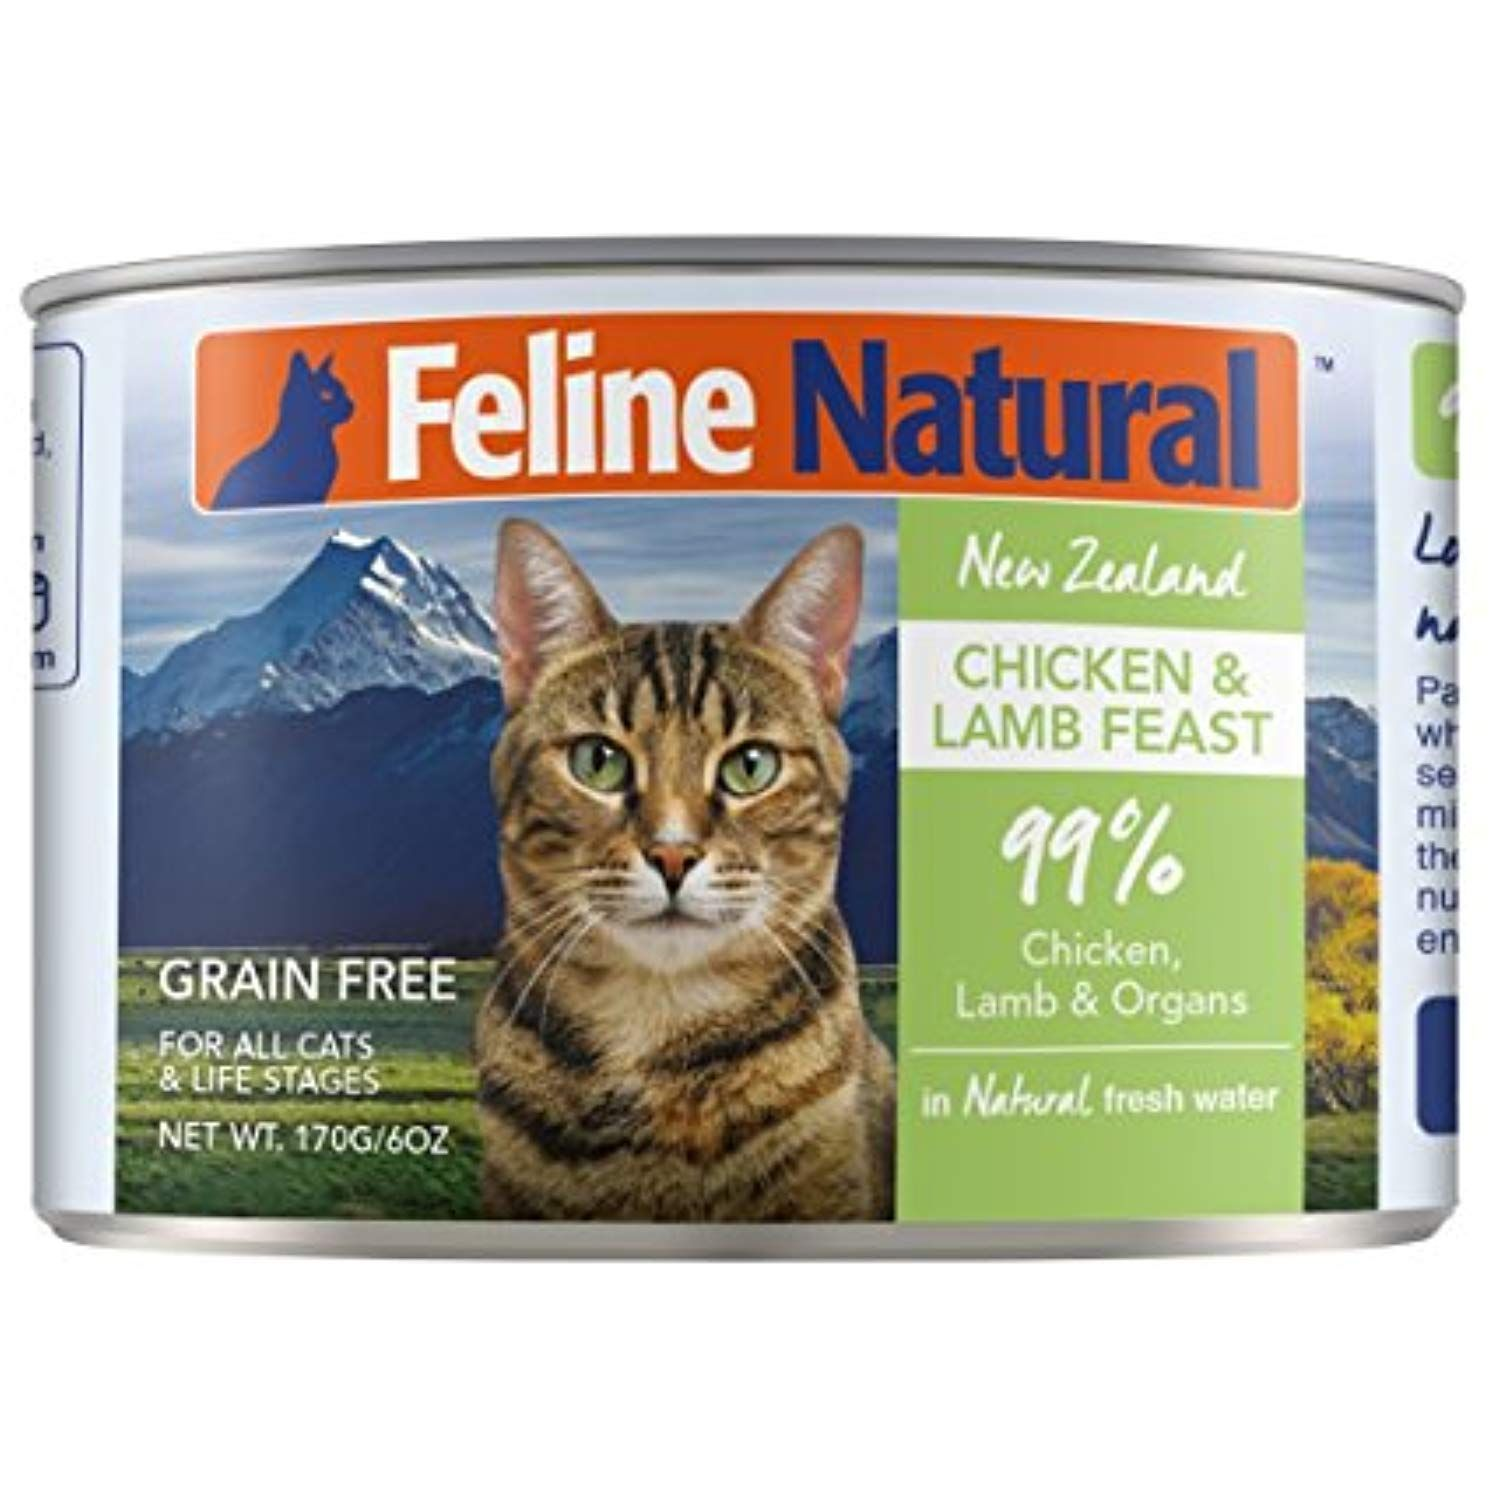 Canned Cat Food By Feline Natural Perfect Grain Free Healthy Hypoallergenic Limited Ingredients Bpa Free Wet C Canned Cat Food Wet Cat Food Best Cat Food